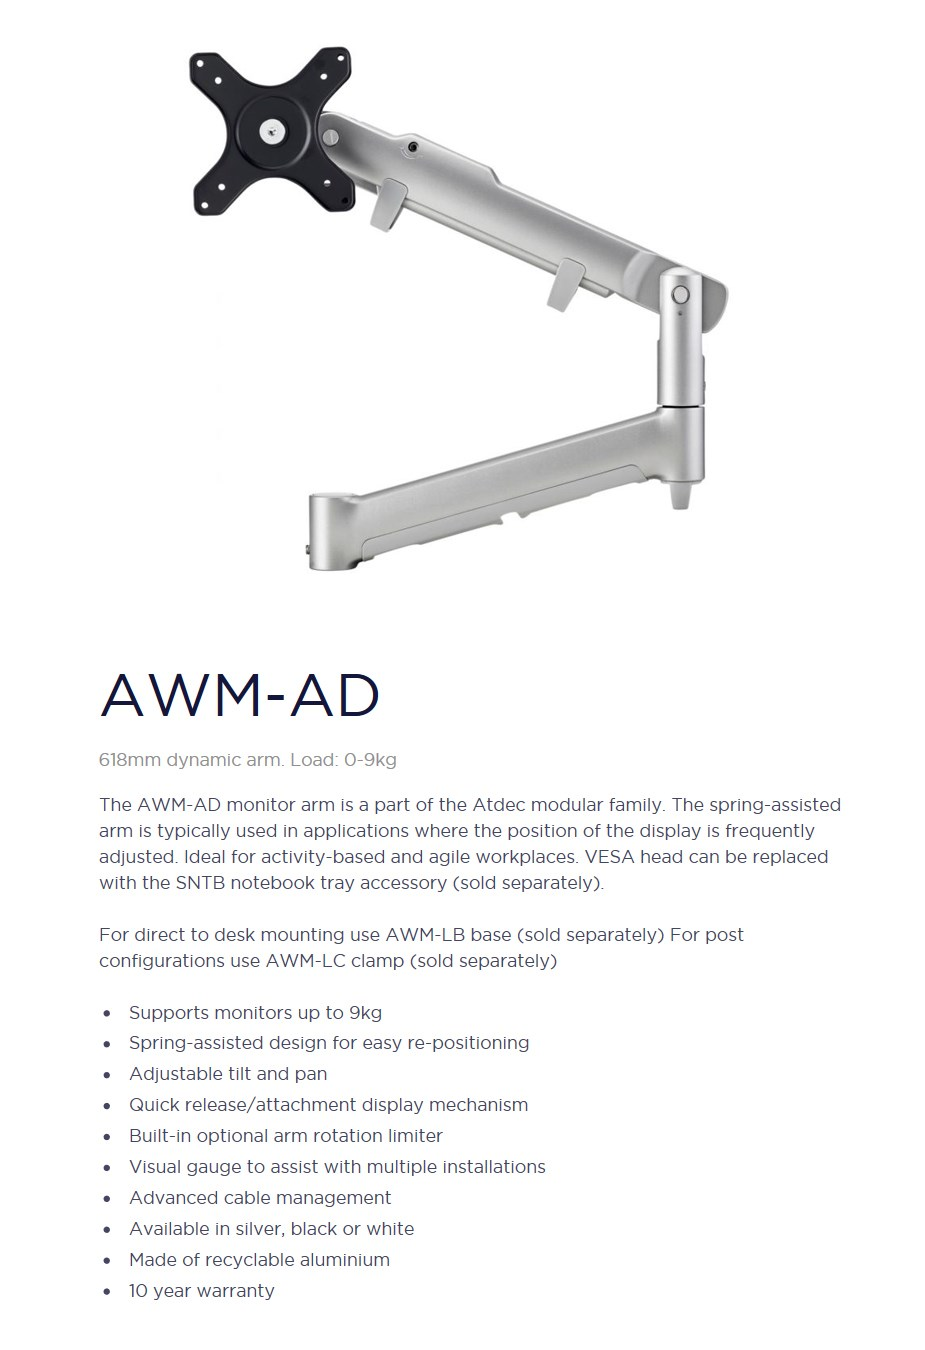 Atdec AWM-AD 618mm Dynamic Monitor Arm - Silver - Desktop Overview 1